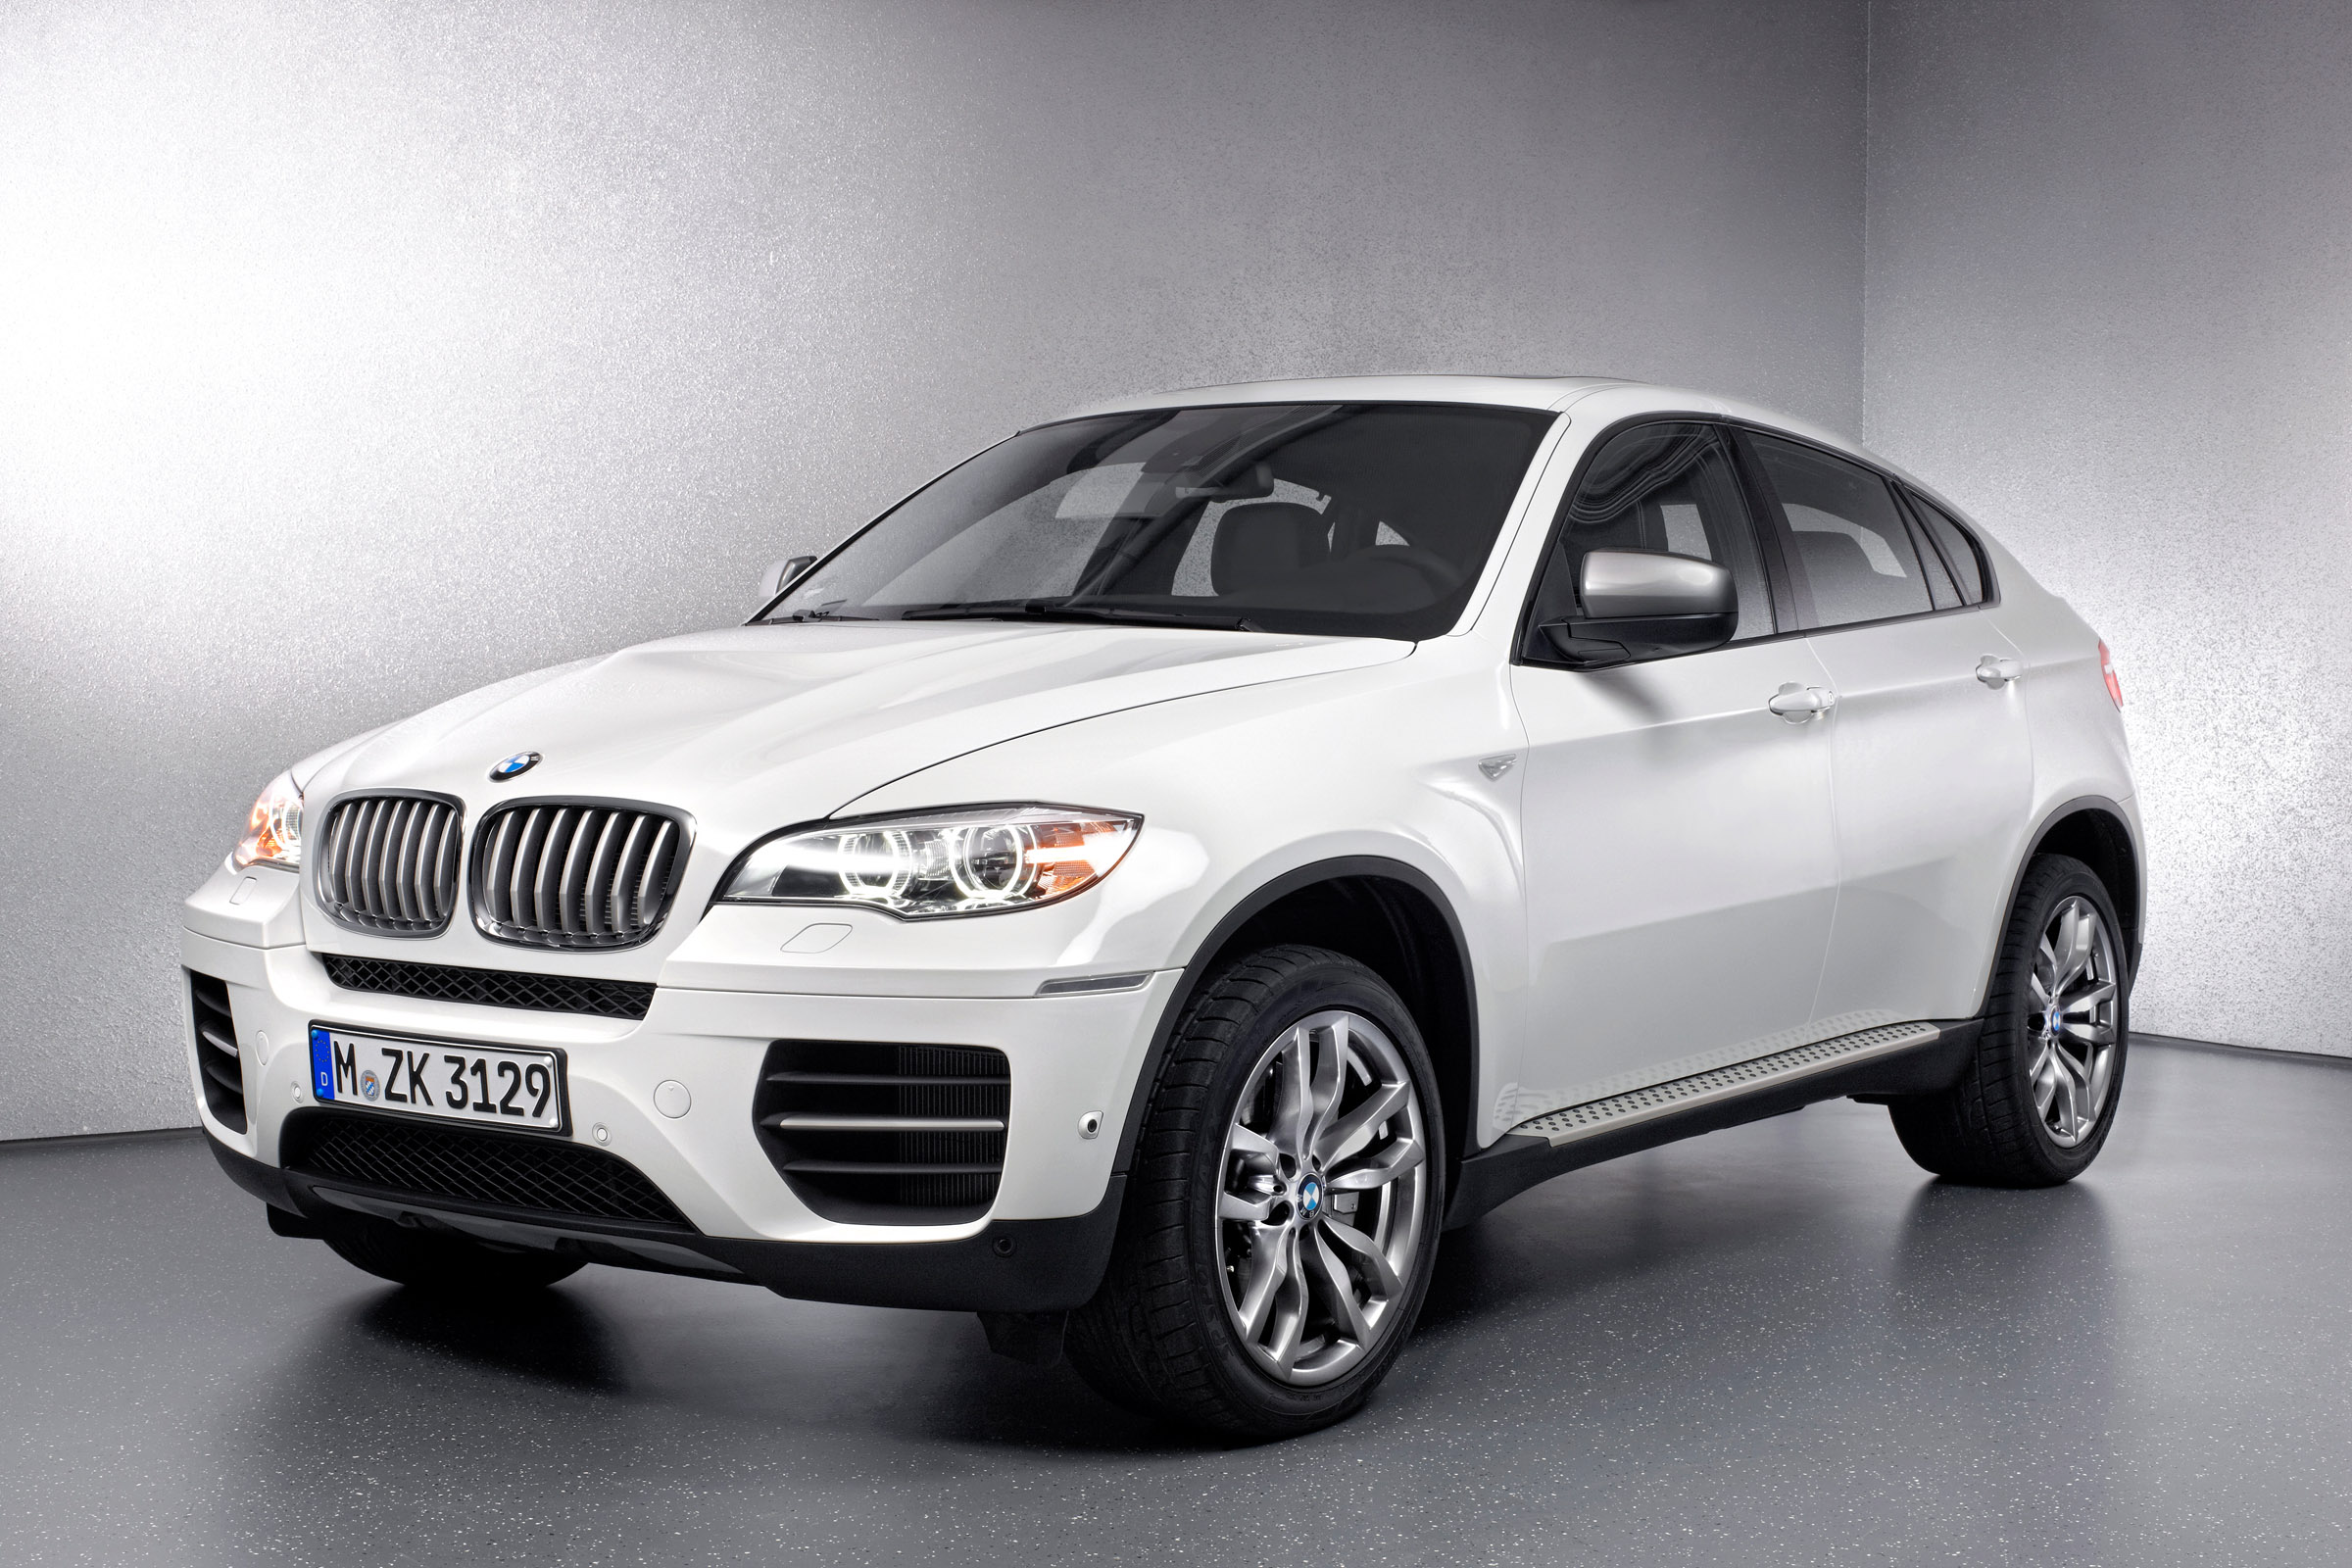 2012 BMW X6 M50d - Picture 63824